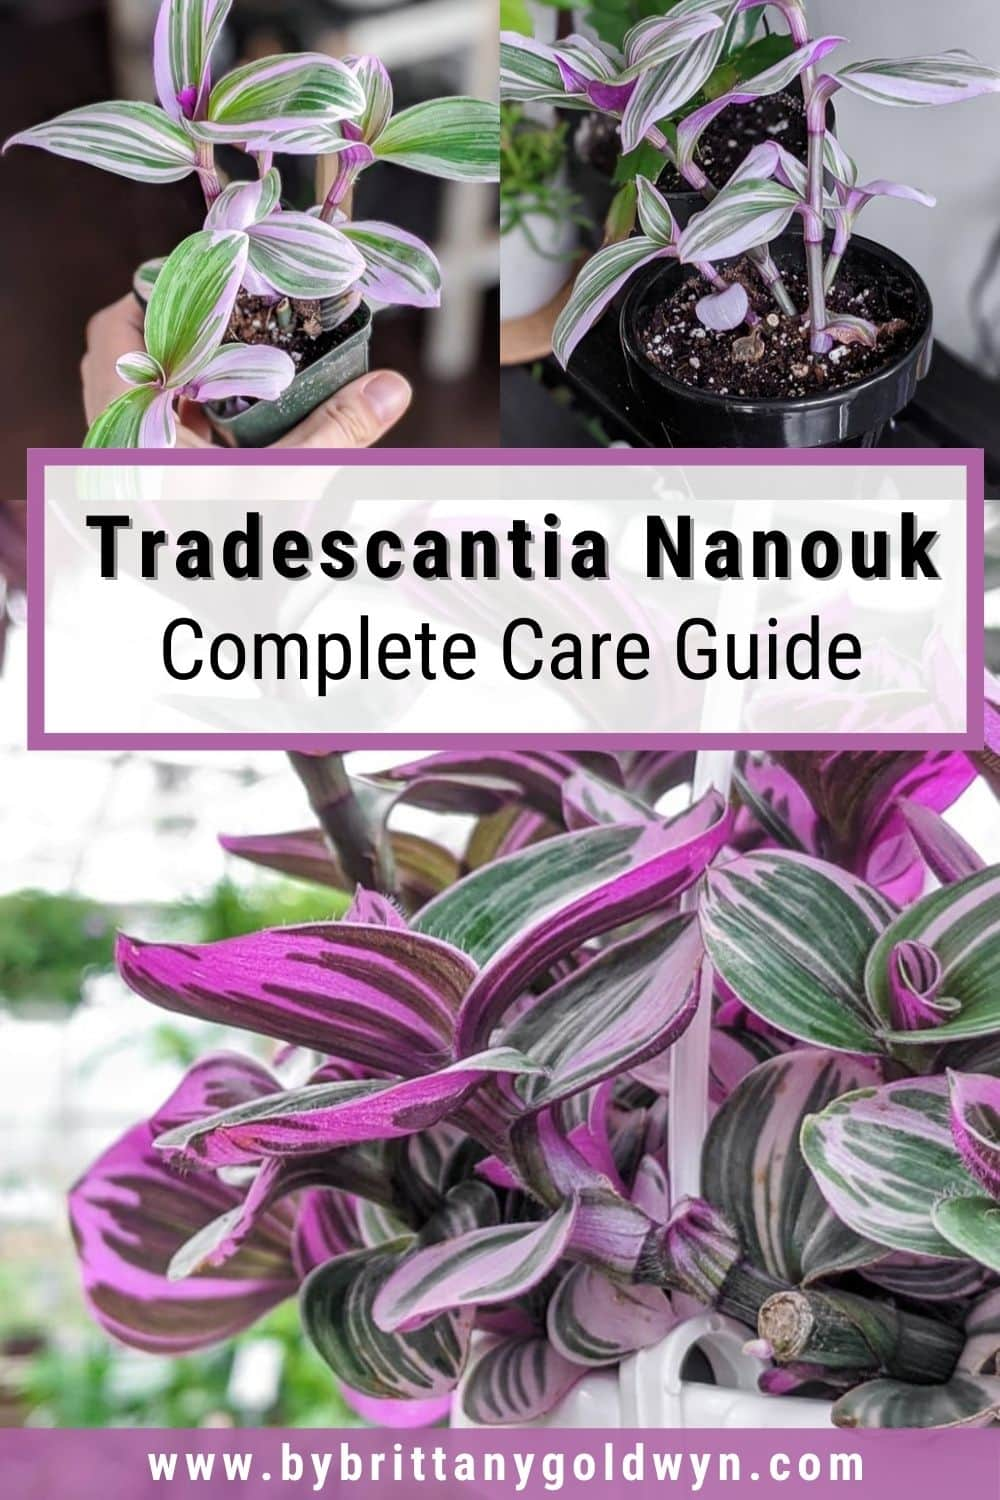 image collage of tradescantia nanouk with text overlay